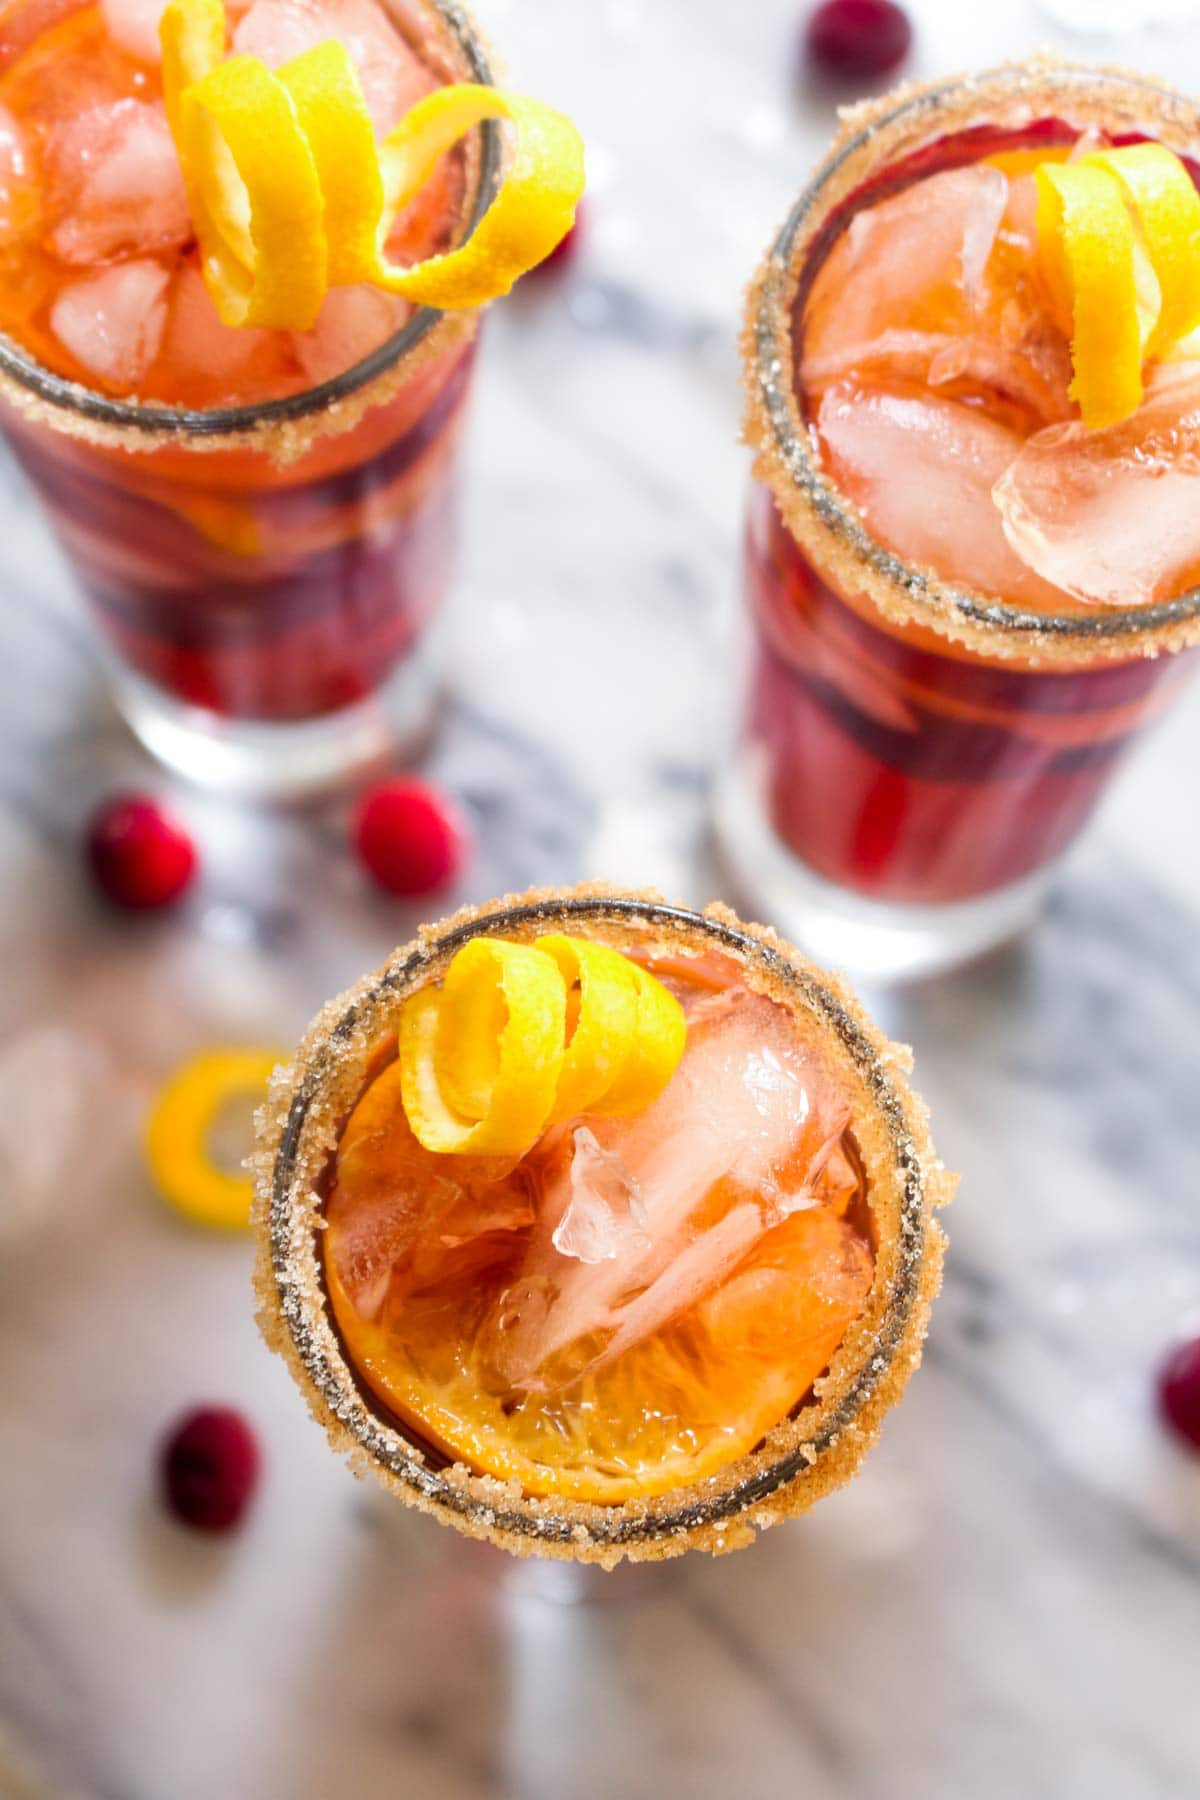 This Kombucha Sangria recipe is a non-alcoholic party drink. Effervescent kombucha gives it a sophisticated feel and cranberries and orange slices infuse this healthy drink with holiday flavor.